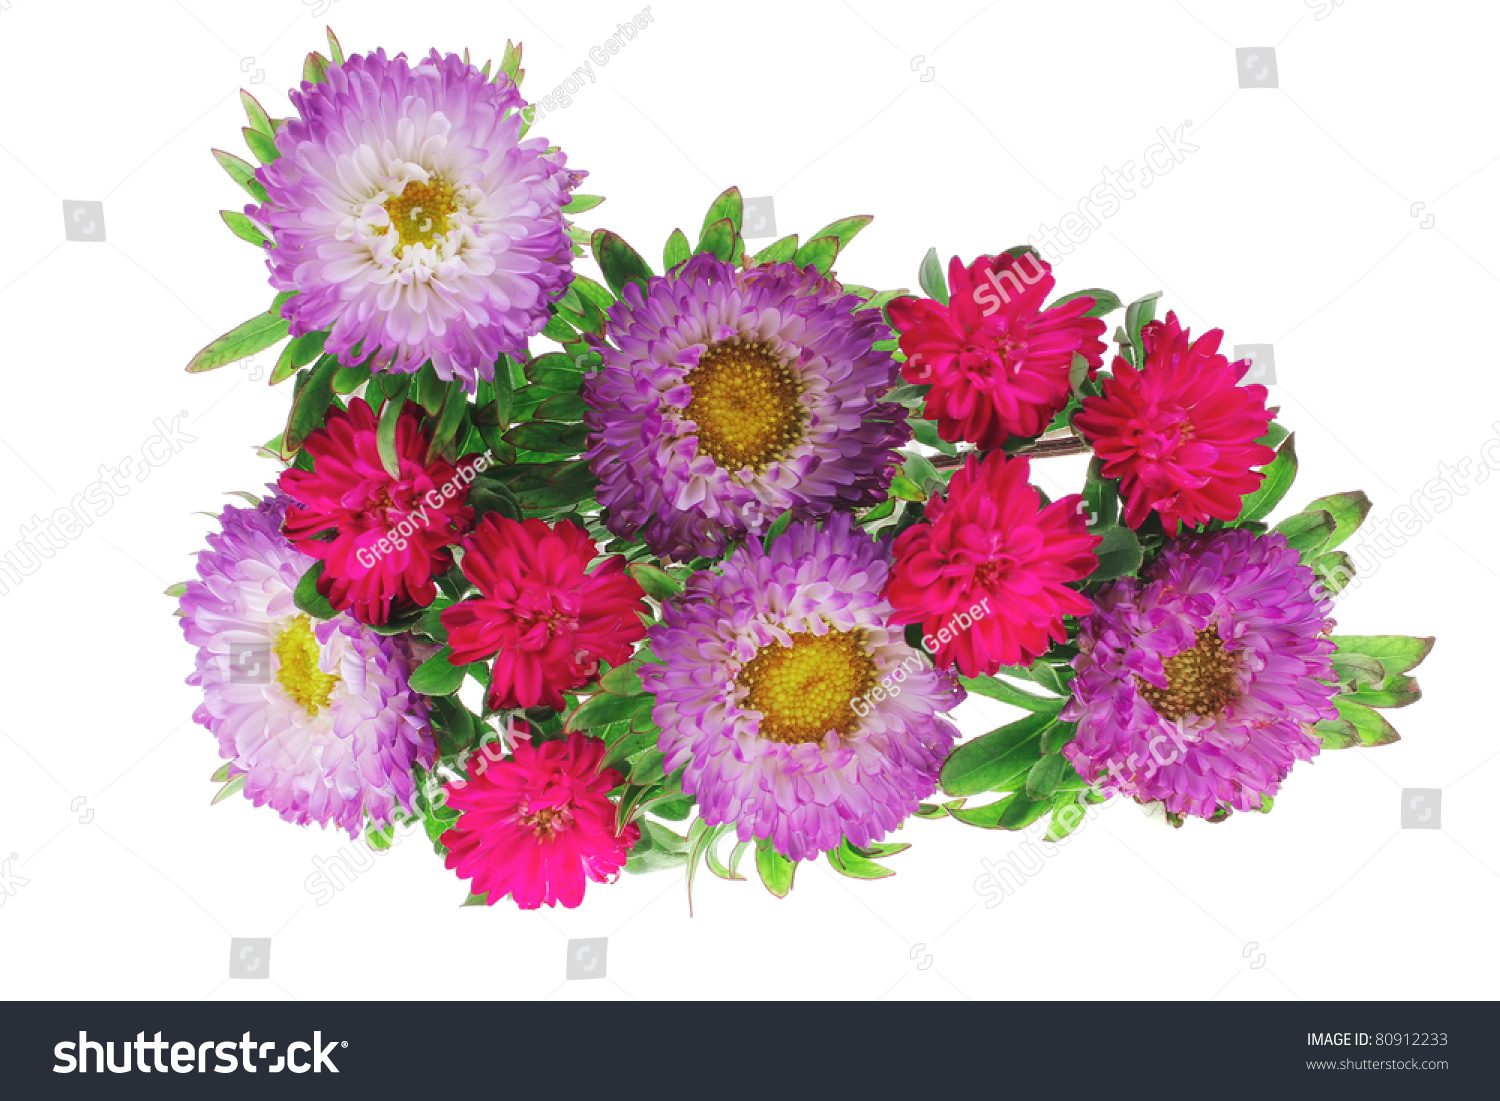 Bouquet of colorful Asters flowers over white background | EZ Canvas